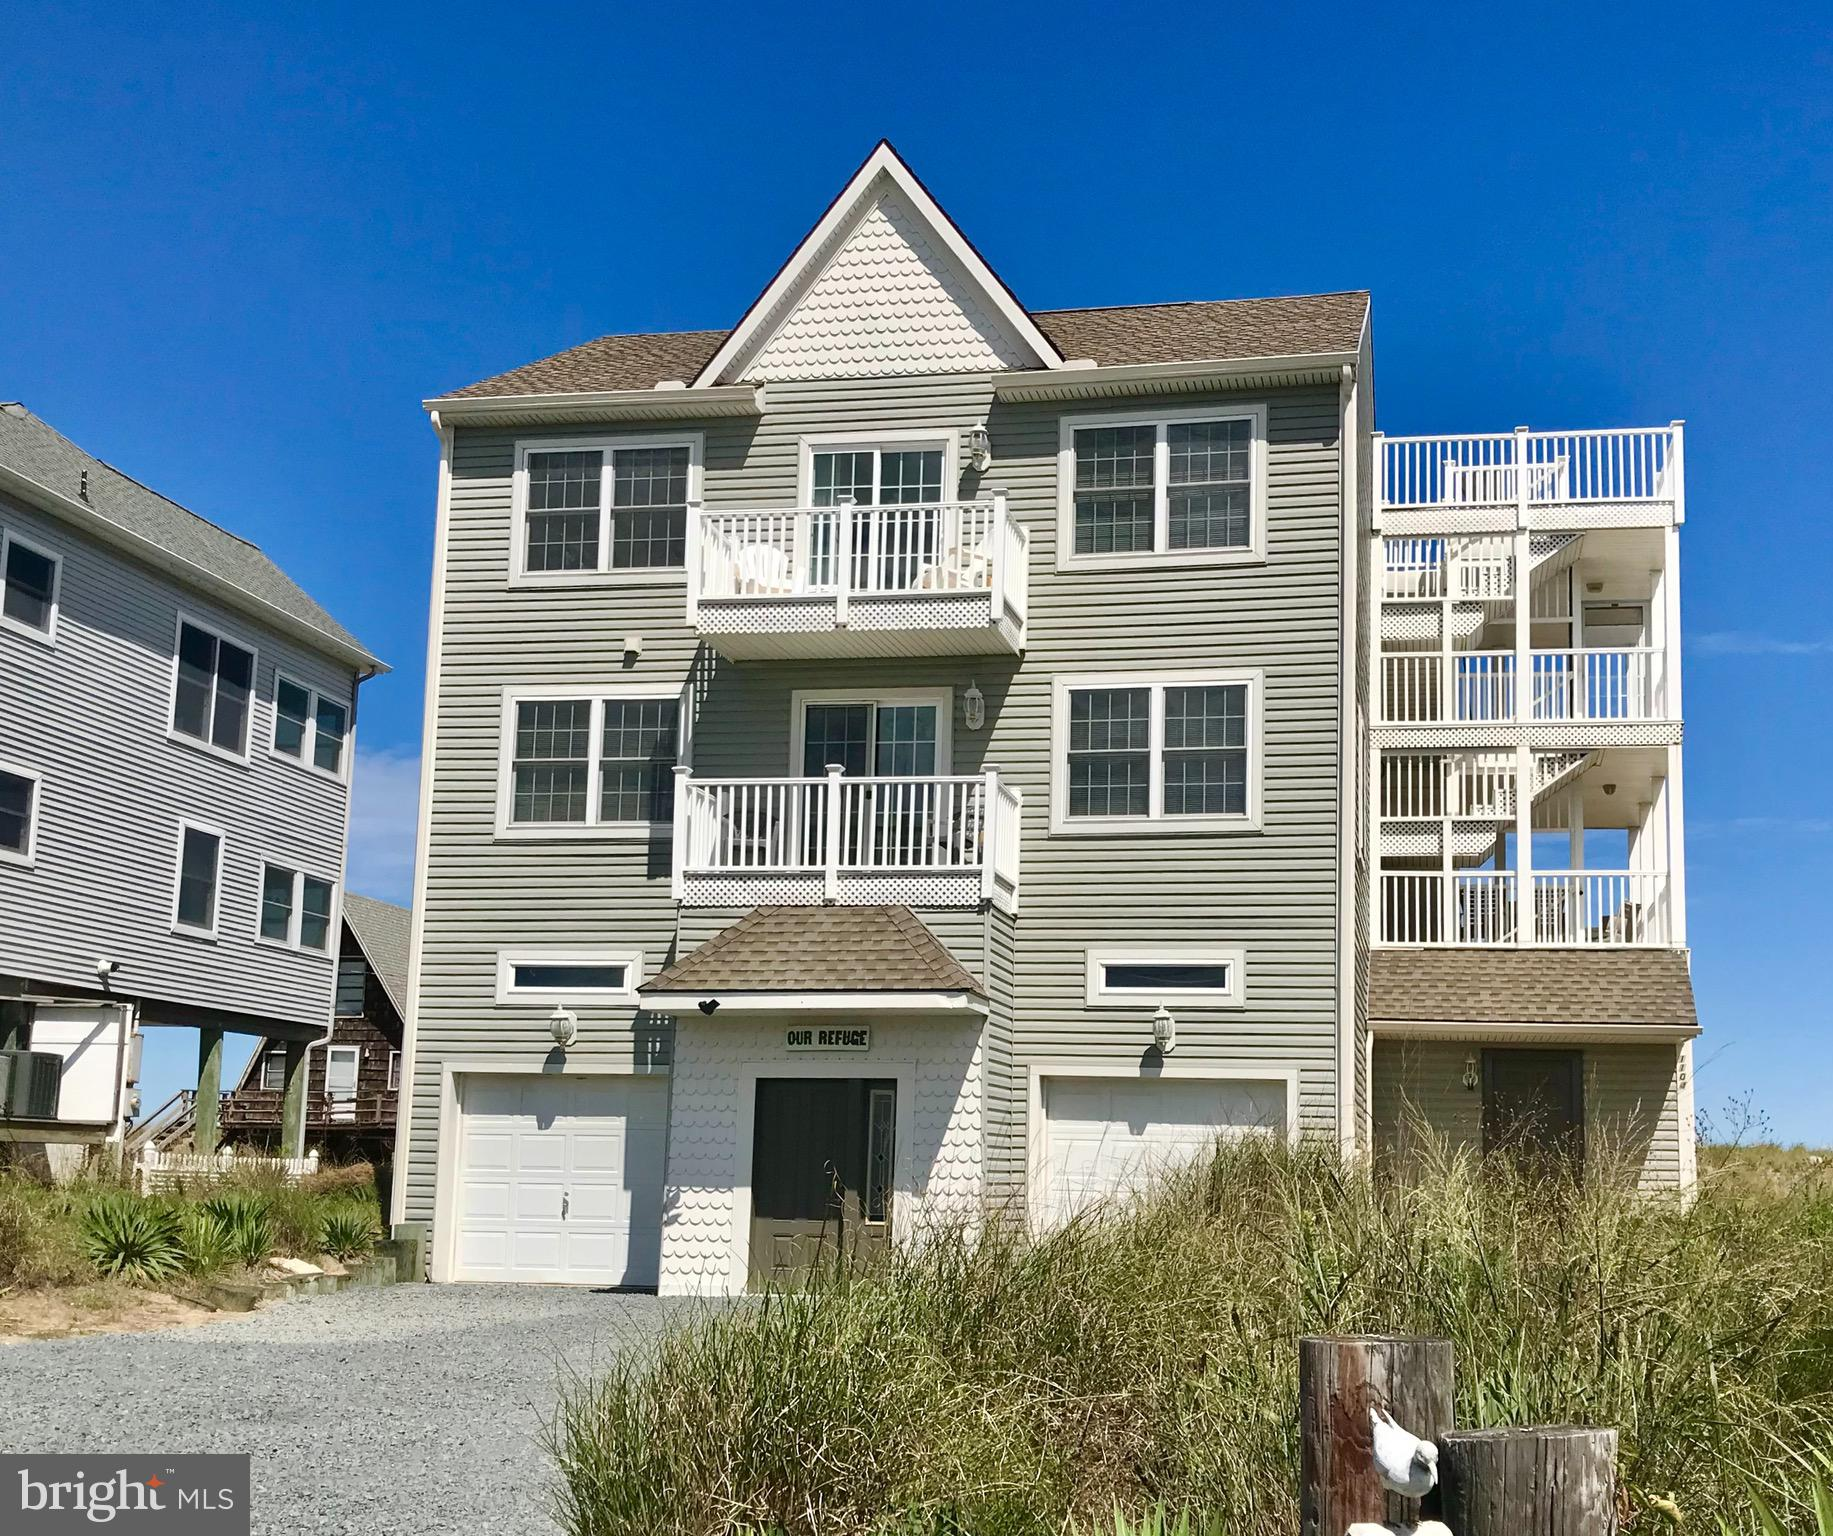 """Bright and Open Coastal Contemporary with  panoramic views of the Delaware Bay and Primehook Wildlife Refuge.  Rare Broadkill Beach Opportunity for a second home or proven lucrative vacation rental.  3BR 2 BA home with the flexibility of 2 owner suites and/or in-law suite.  Oversized 2 bay garage offering potential RV and/or boat storage with minimal modification.  Enjoy panoramic views of sunrises over the  Delaware Bay, Cape May, Lewes and stunning, unobstructed views of sunsets over the Prime Hook Wildlife Refuge.  Multiple decks surround the home and feature a fiberglass coating for years of low maintenance enjoyment.   The top deck level """"skydeck"""" will delight with its scenic vistas.  Just steps to the beach, this home offers endless outdoor enjoyment and activities. Just minutes from shopping, fine dining and entertainment in Lewes and Rehoboth Beach yet away from the traffic, crowds and headaches of no parking.  Home is move in-ready and sold furnished. Welcome Home!!"""